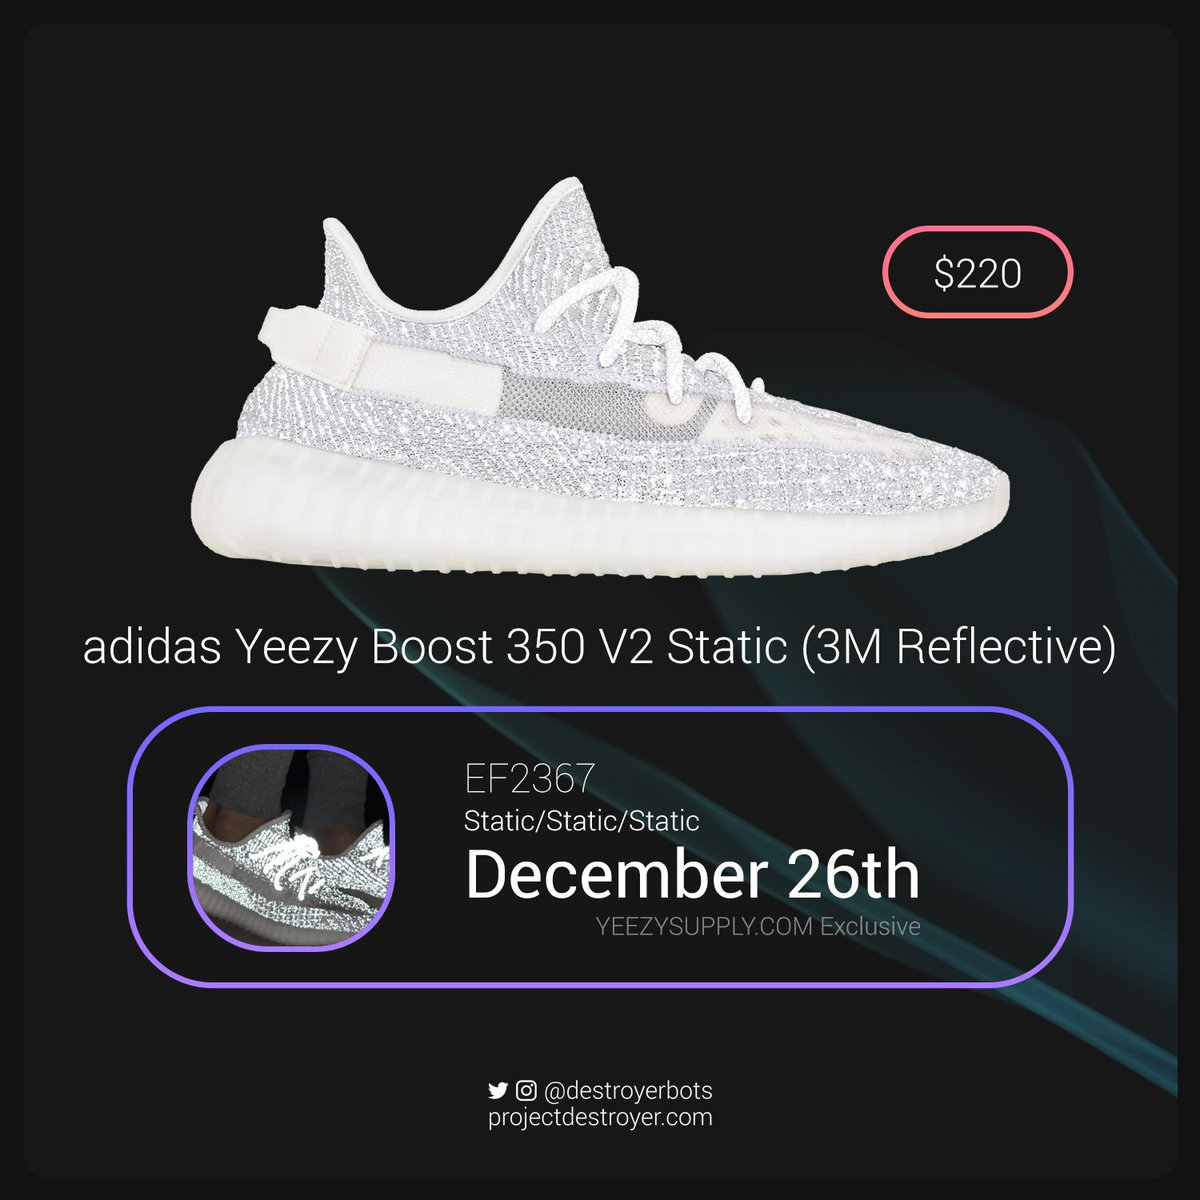 d1d9a02e9 ... Yeezy Supply exclusive. This looks to be the first limited release in  almost a year for Yeezy. Who s looking for a late Christmas present on the  26th